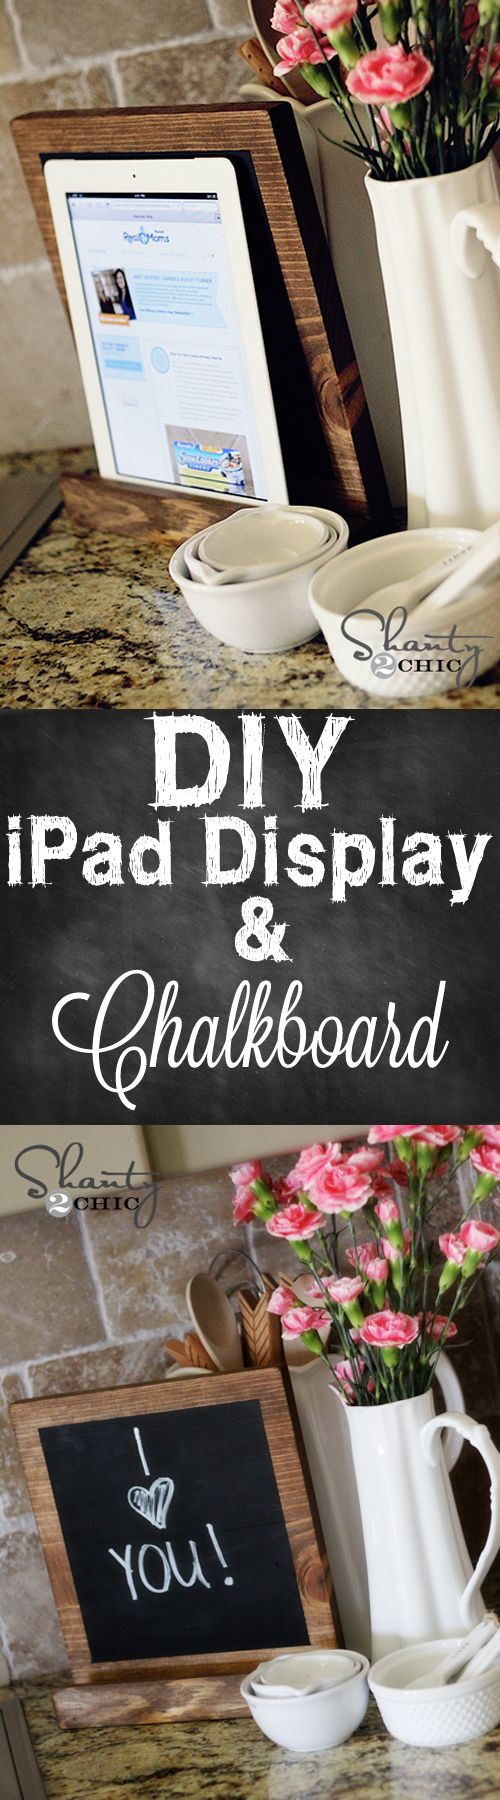 iPad Display that doubles as a chalkboard... Love it! These would make a great, cheap Christmas gift! #DIY #Christmas